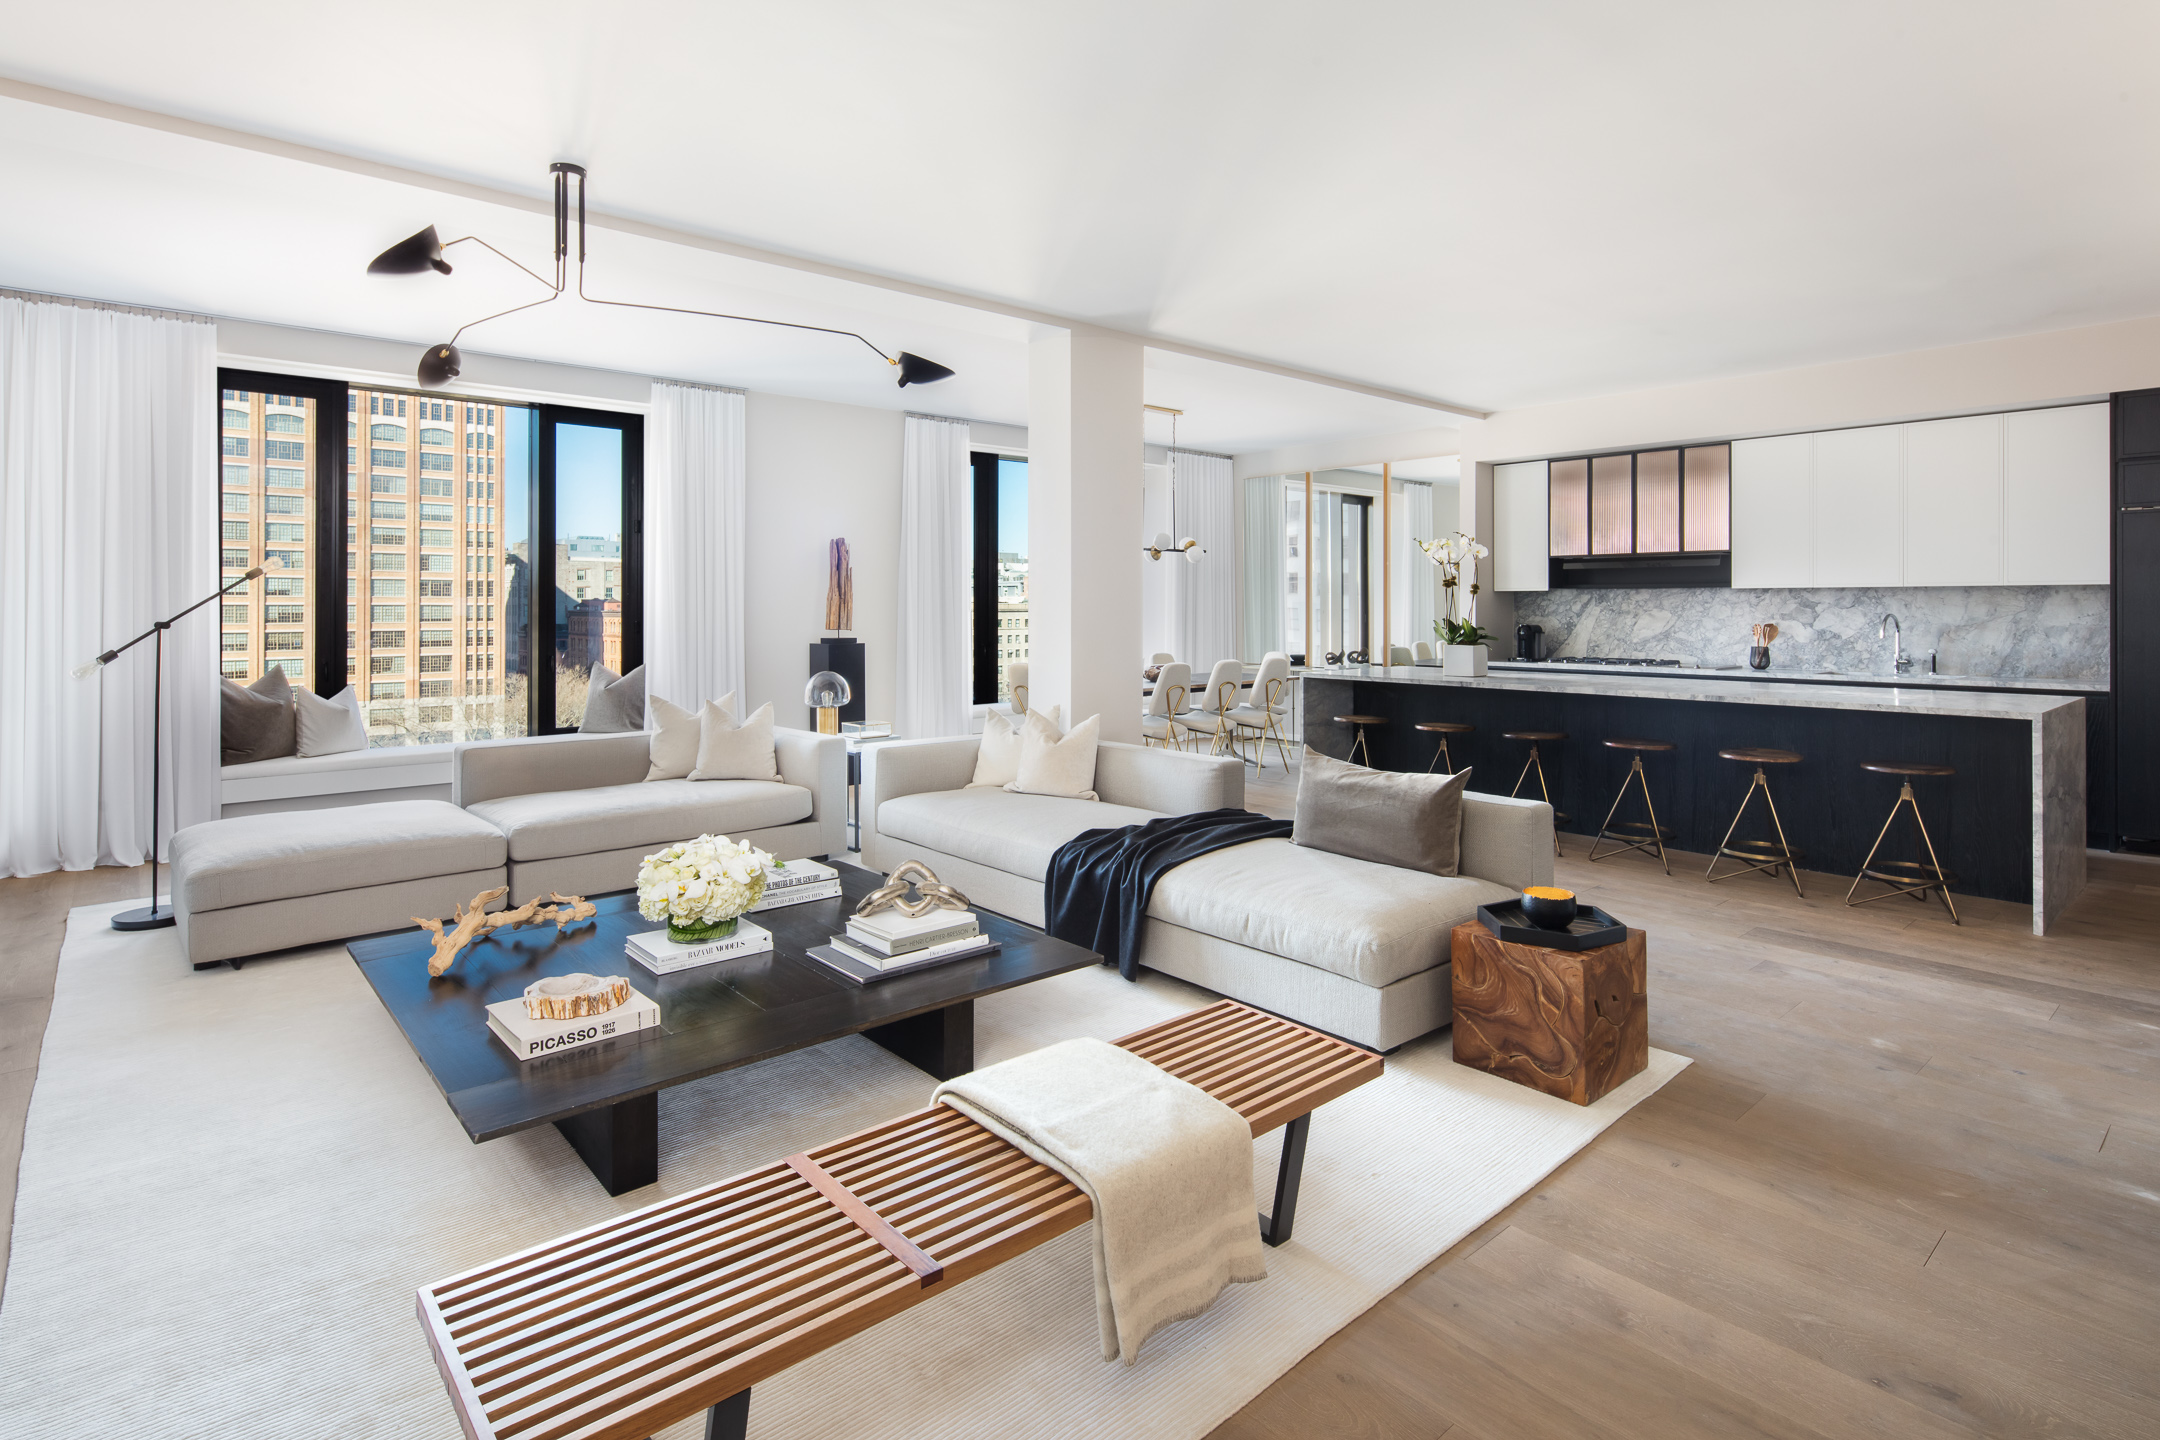 111 West 57th Street Officially Surpasses The Old Steinway